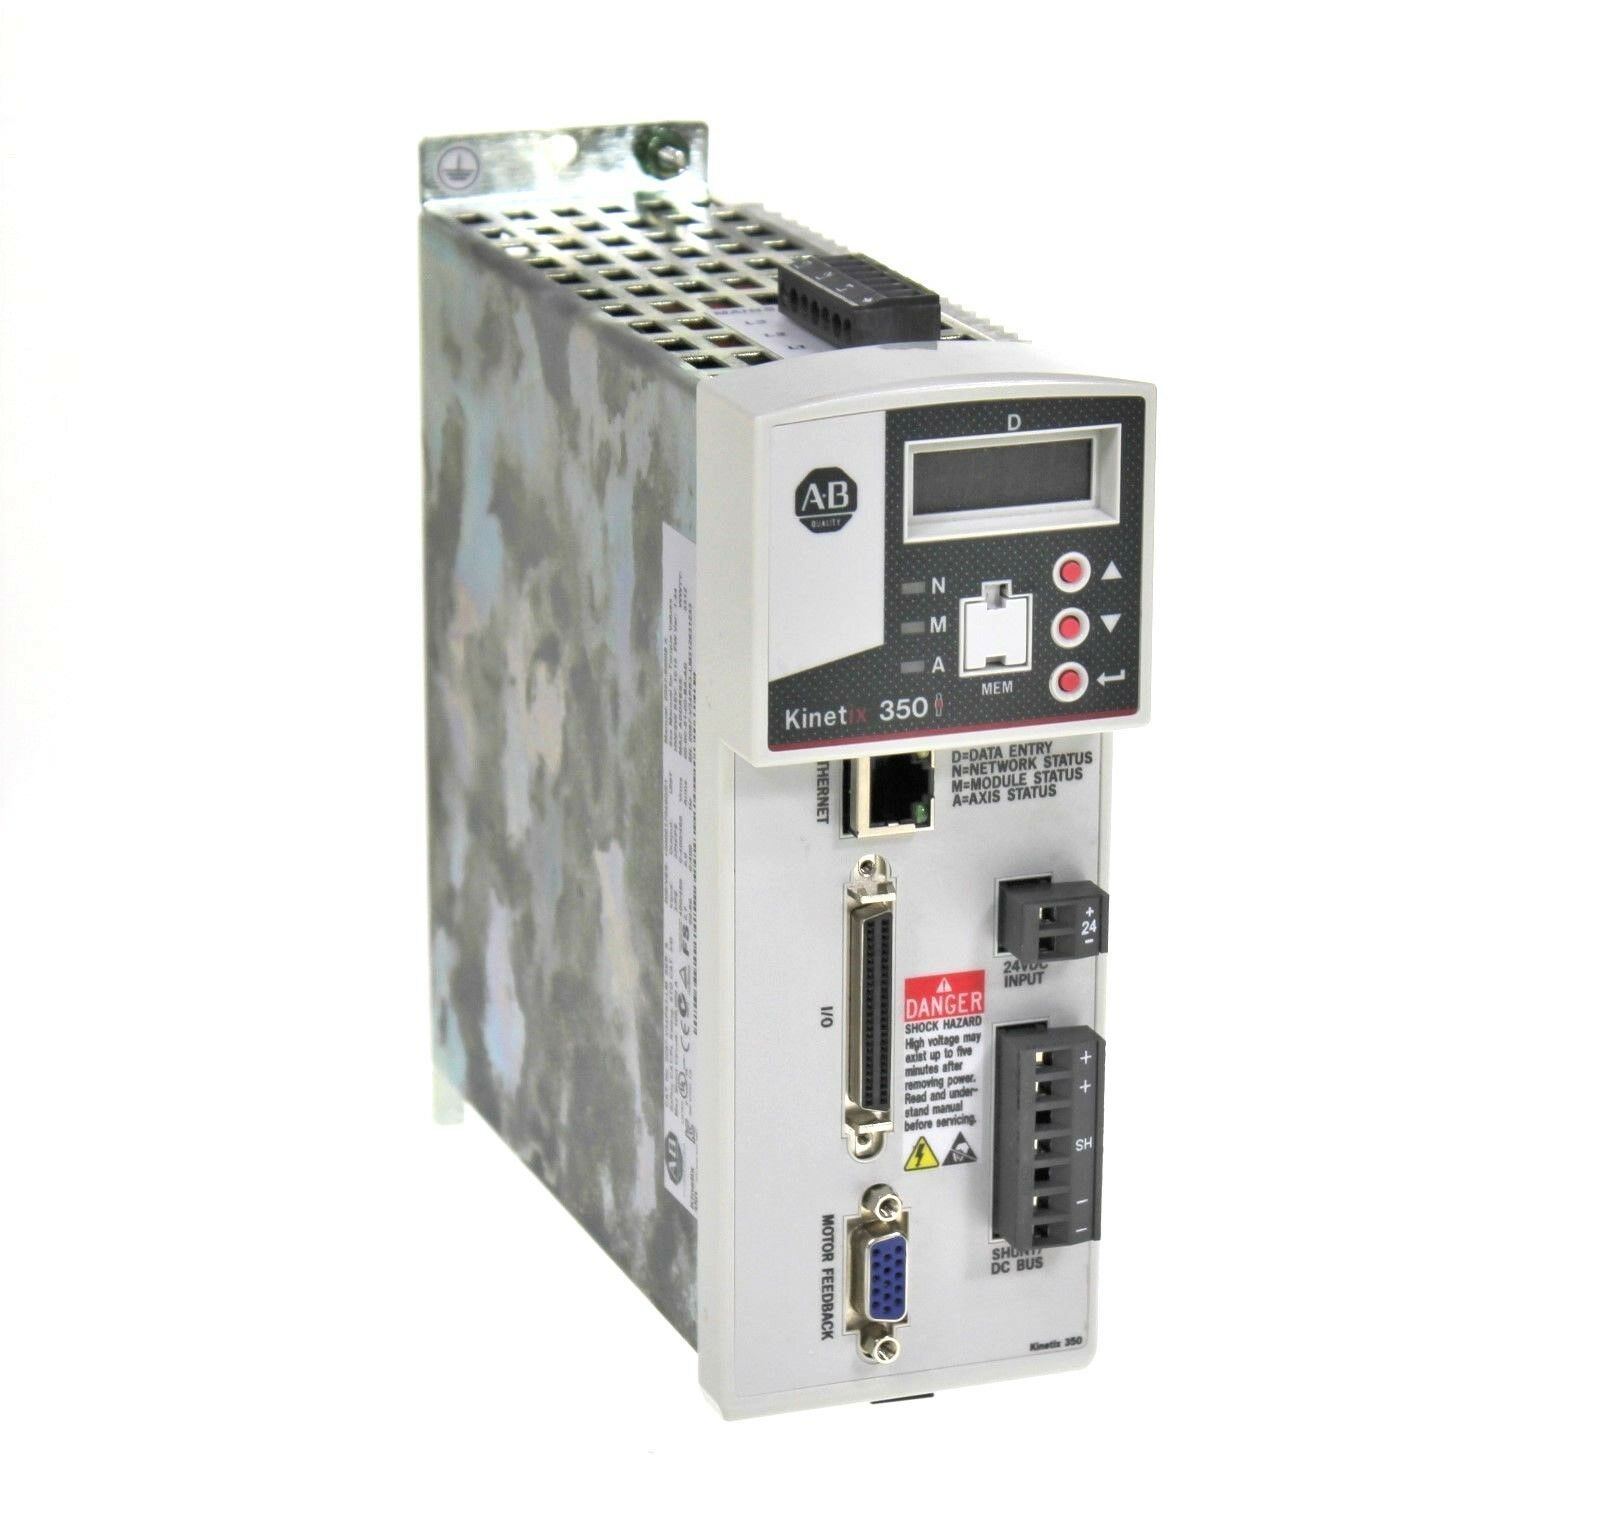 Allen Bradley 2097-V34PR3-LM /A Kinetix 350 Single-Axis EtherNet/IP Servo Drive